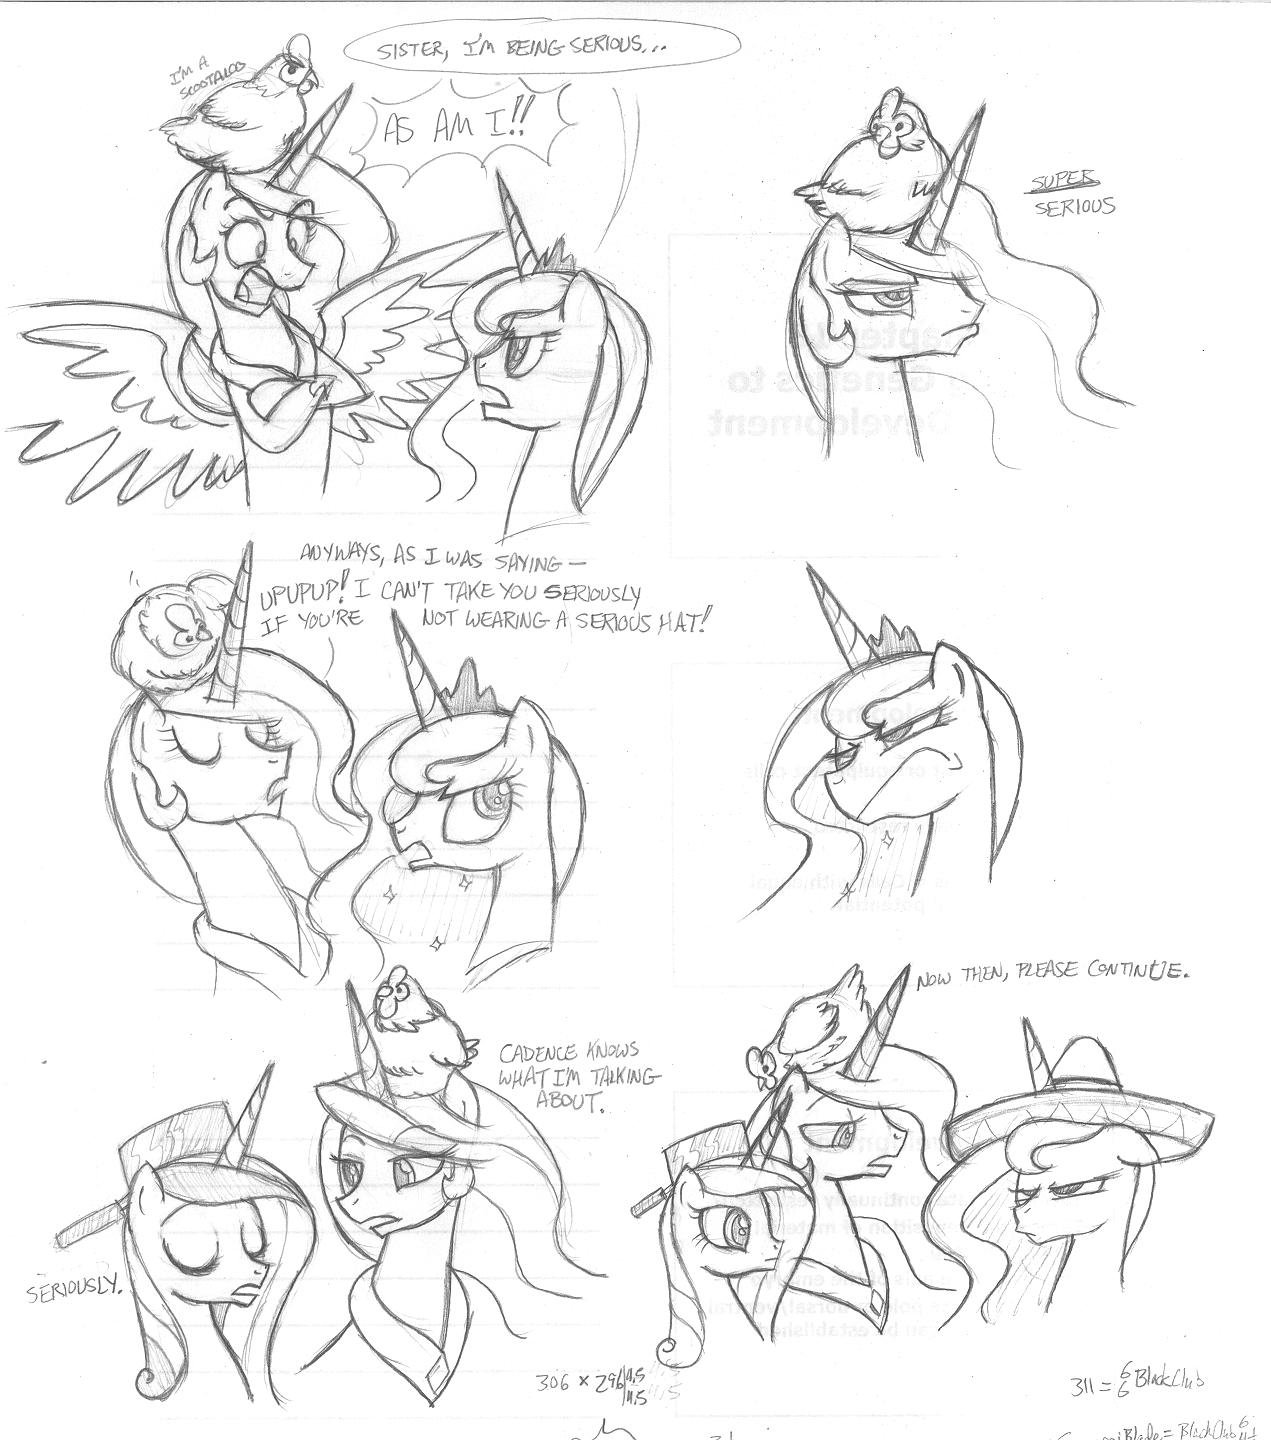 My little pony friendship is magic coloring pages best night ever -  Safe Scootachicken Serious Business Serious Hat Sombrero Traditional Art Derpibooru My Little Pony Friendship Is Magic Imageboard